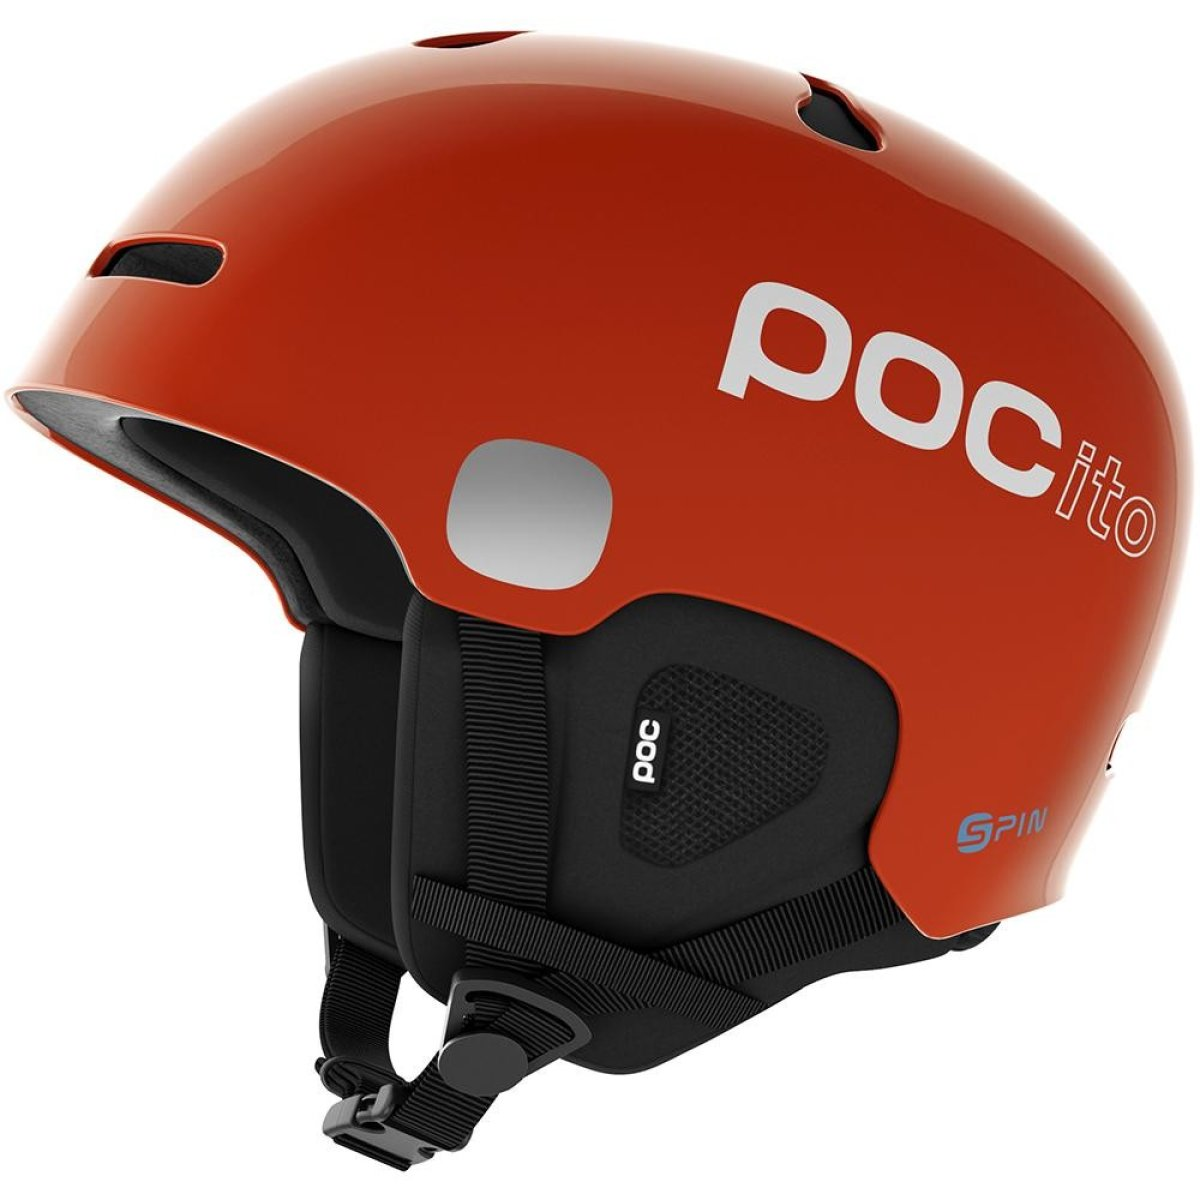 Шлем горнолыжный POC POCito Auric Cut SPIN Fluorescent Orange PC 104989050MLG1